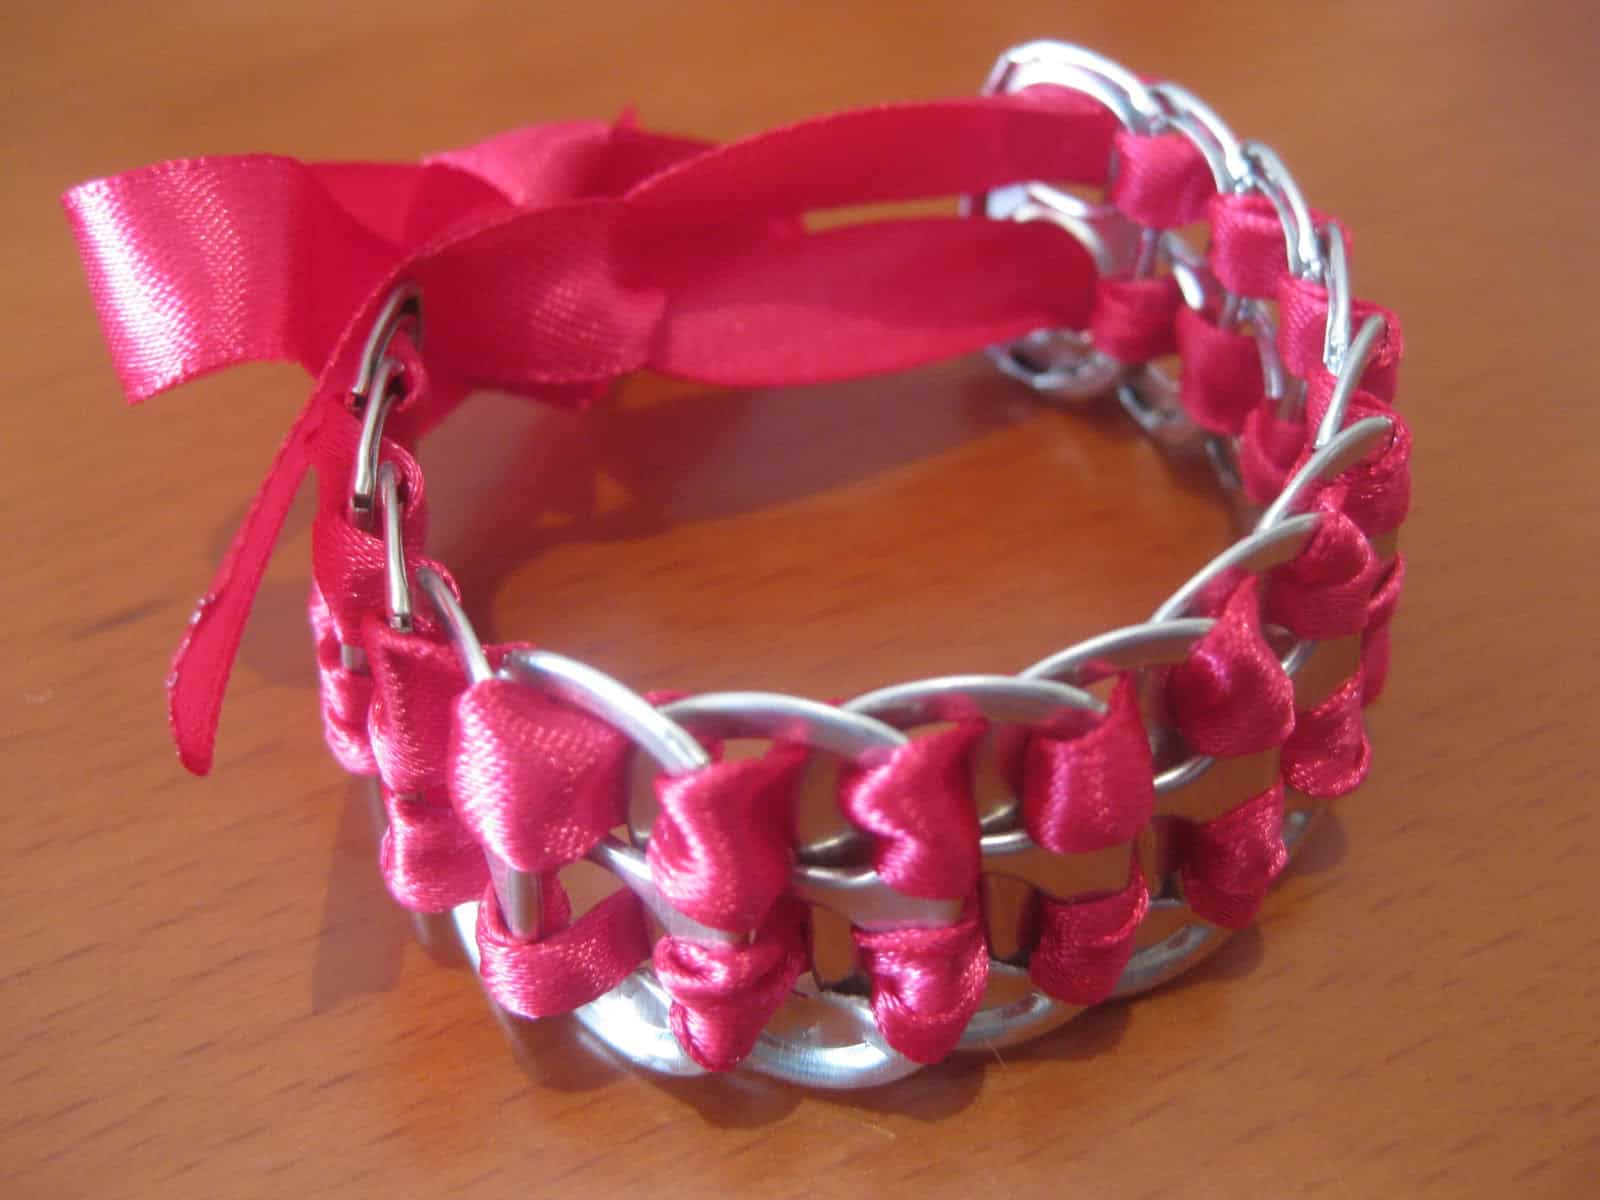 Pop tab bracelet with woven ribbons